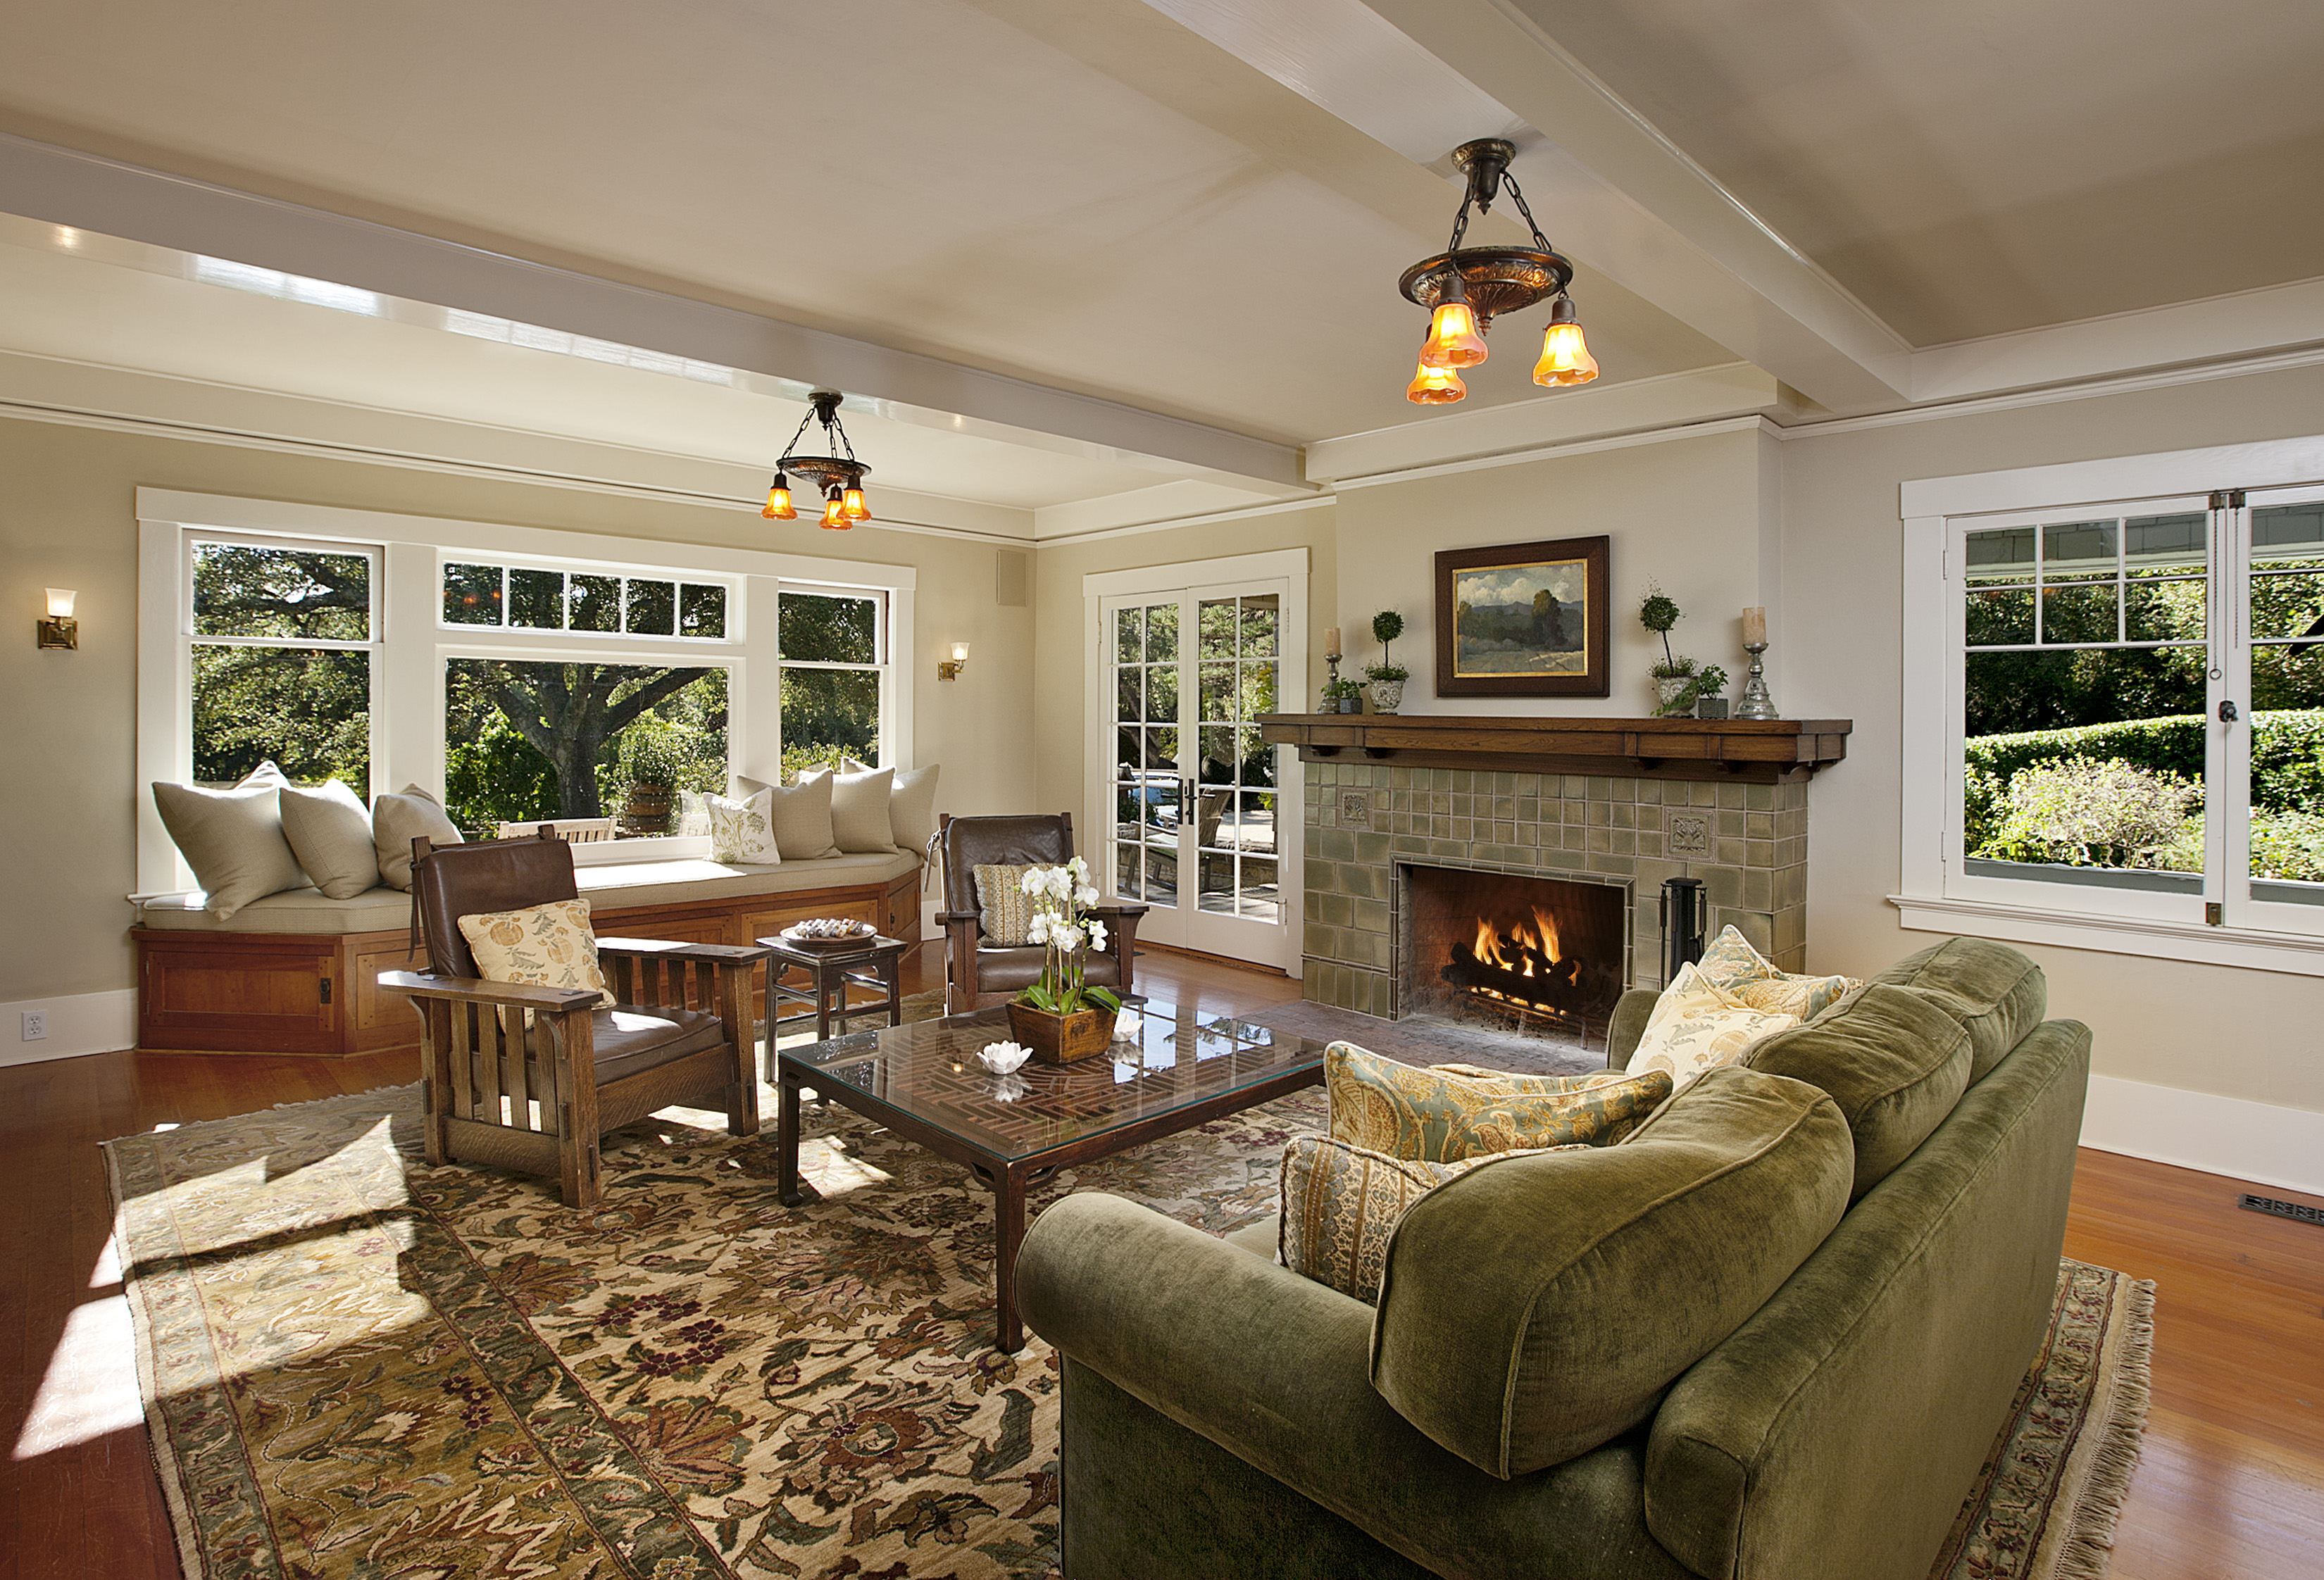 Popular home styles for 2012 montecito real estate for Living room design styles